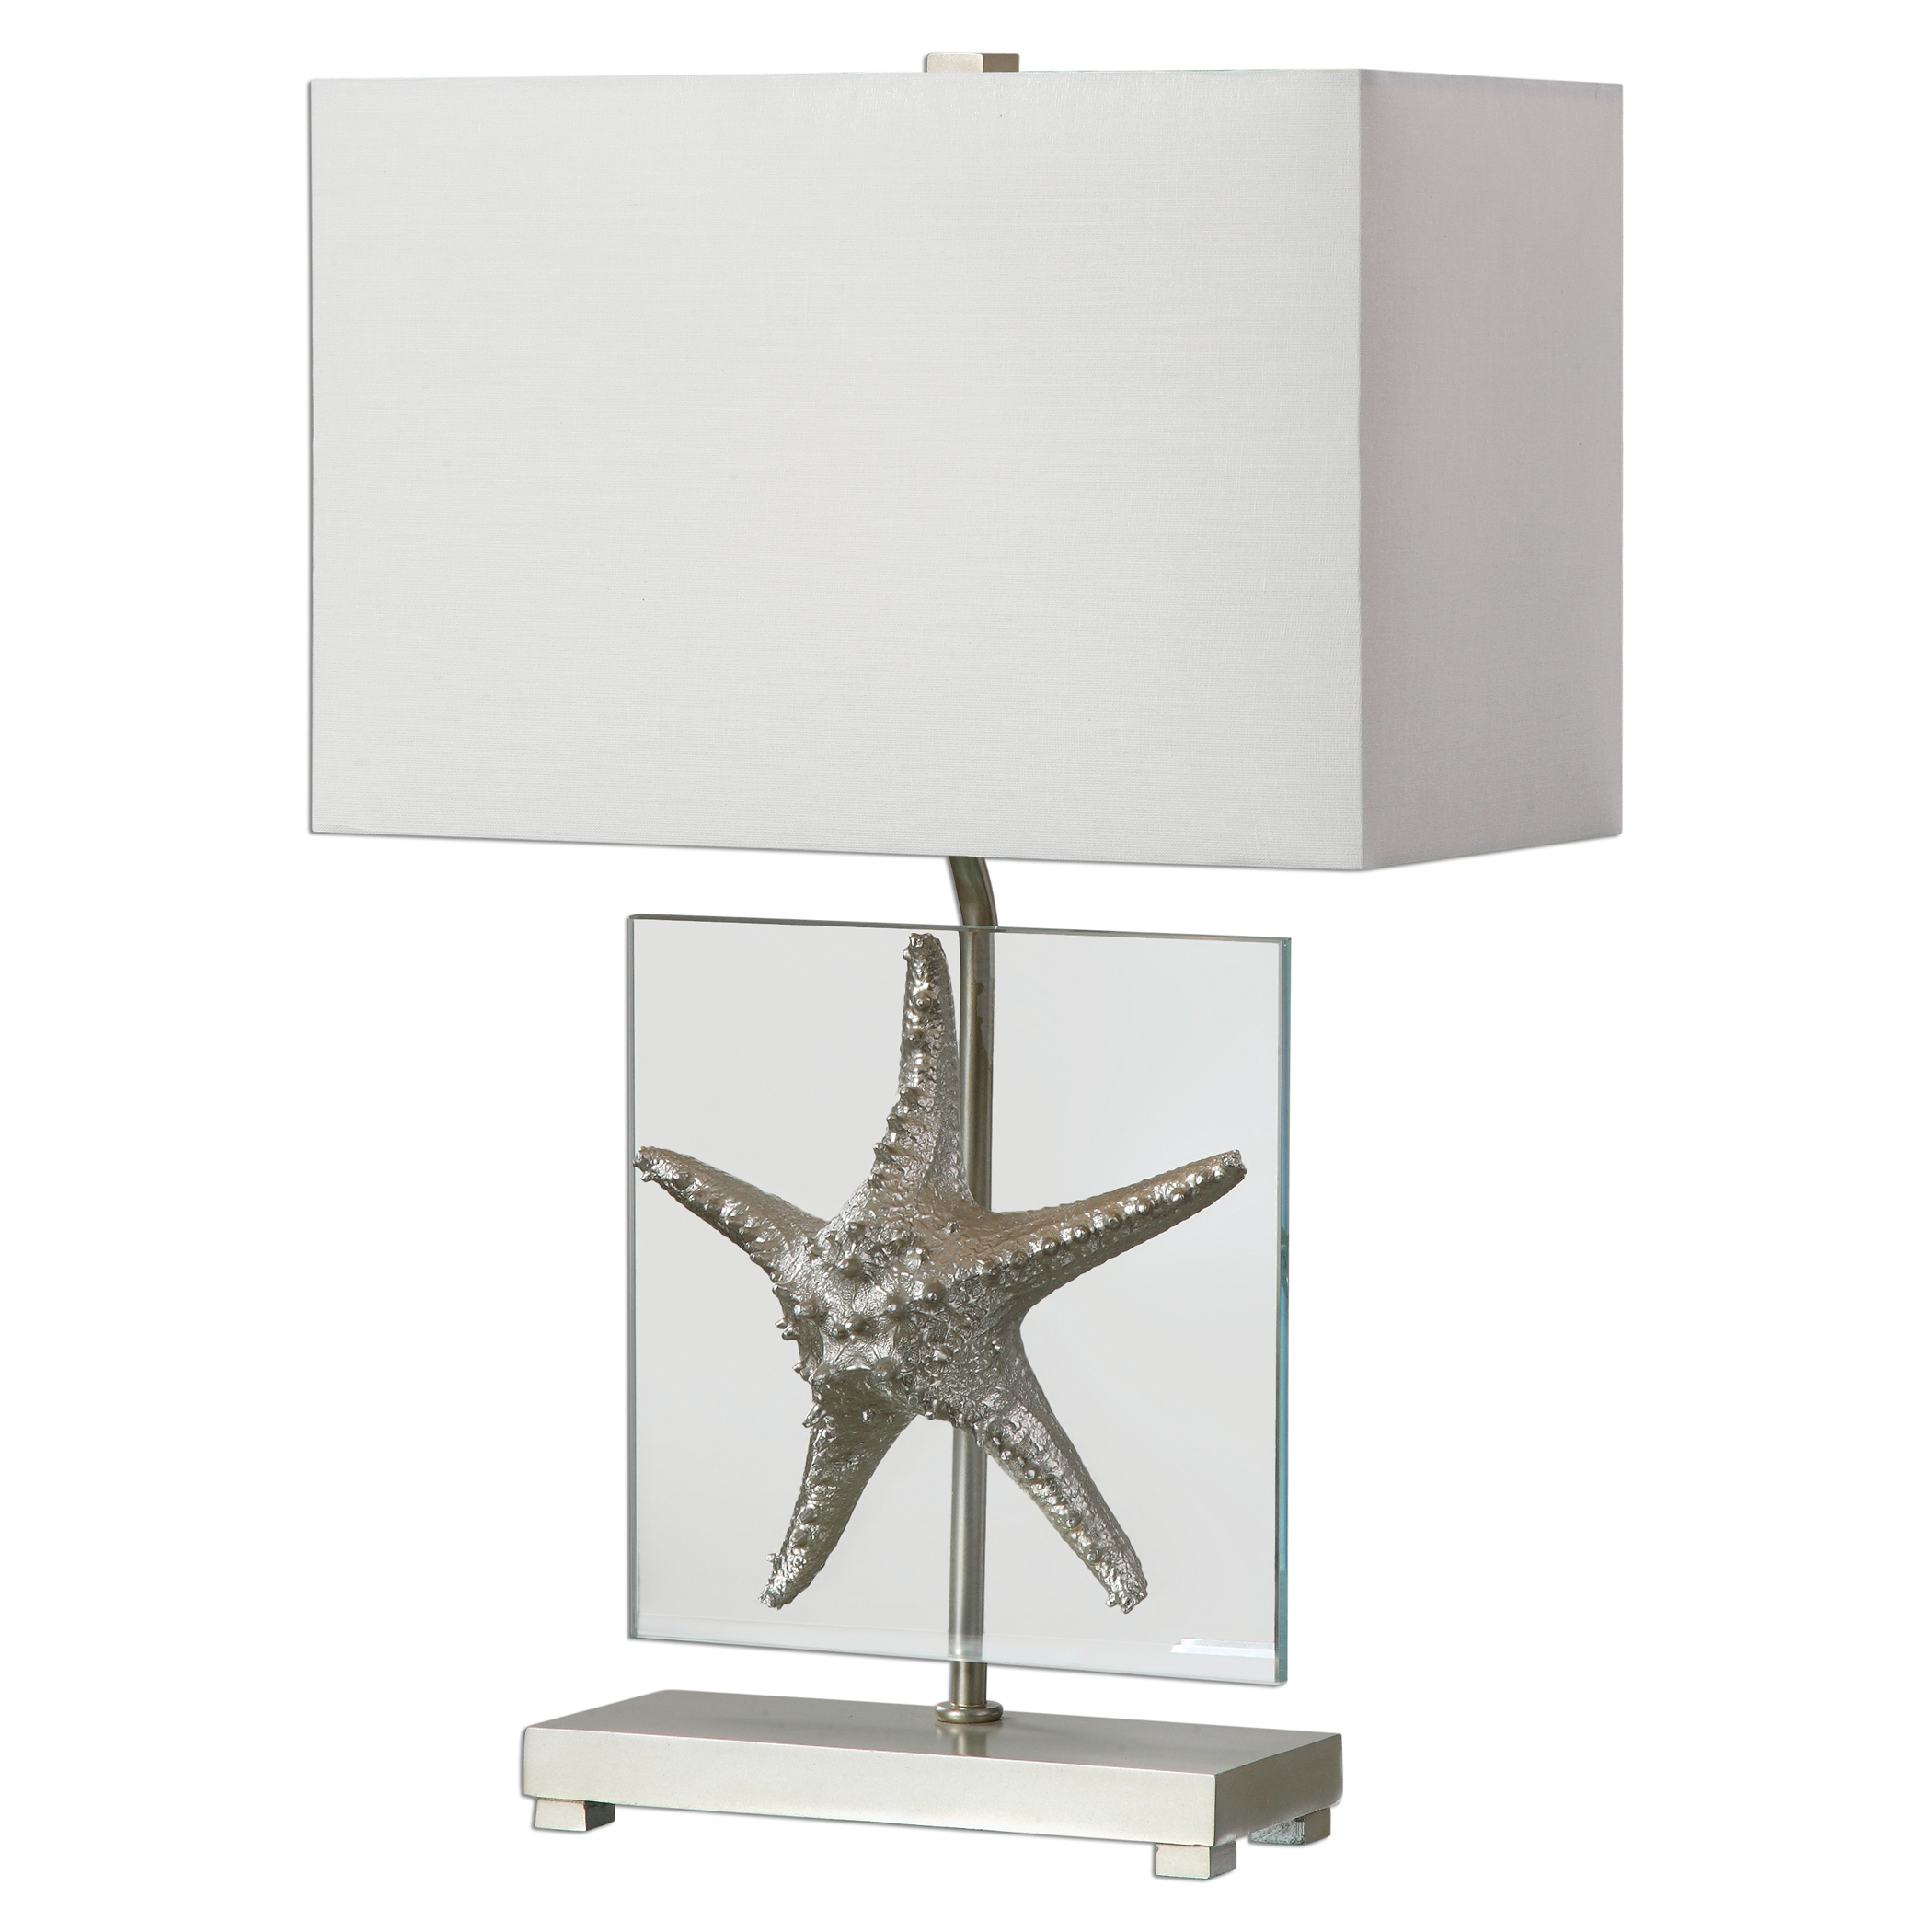 Uttermost Lamps Silver Starfish Table Lamp - Item Number: 27101-1